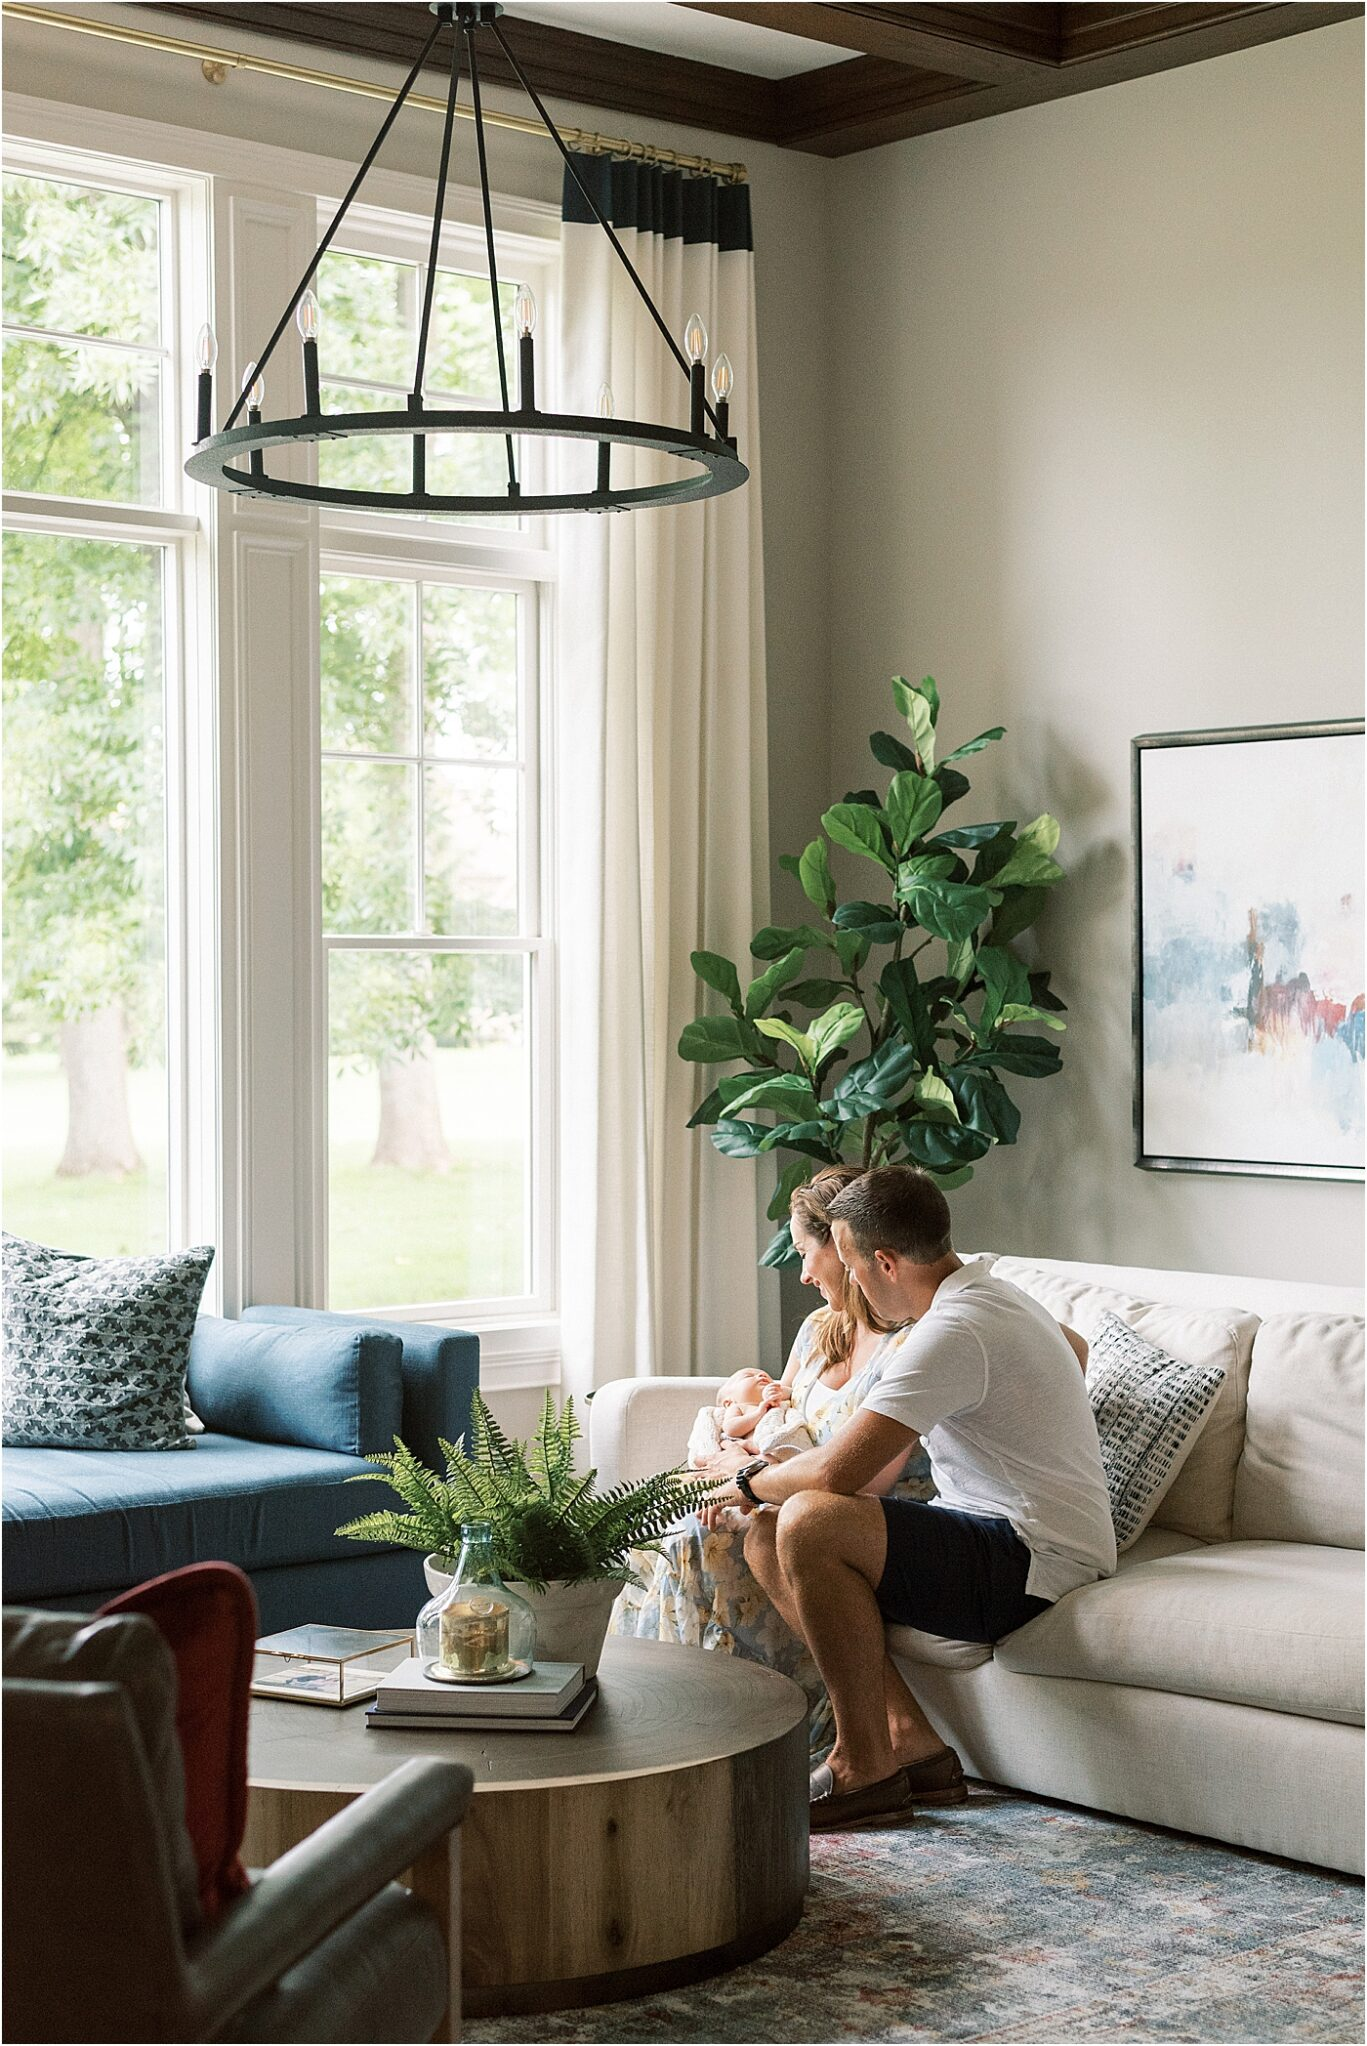 Lifestyle newborn session in beautiful Carmel, Indiana home. Photo by Lindsay Konopa Photography.